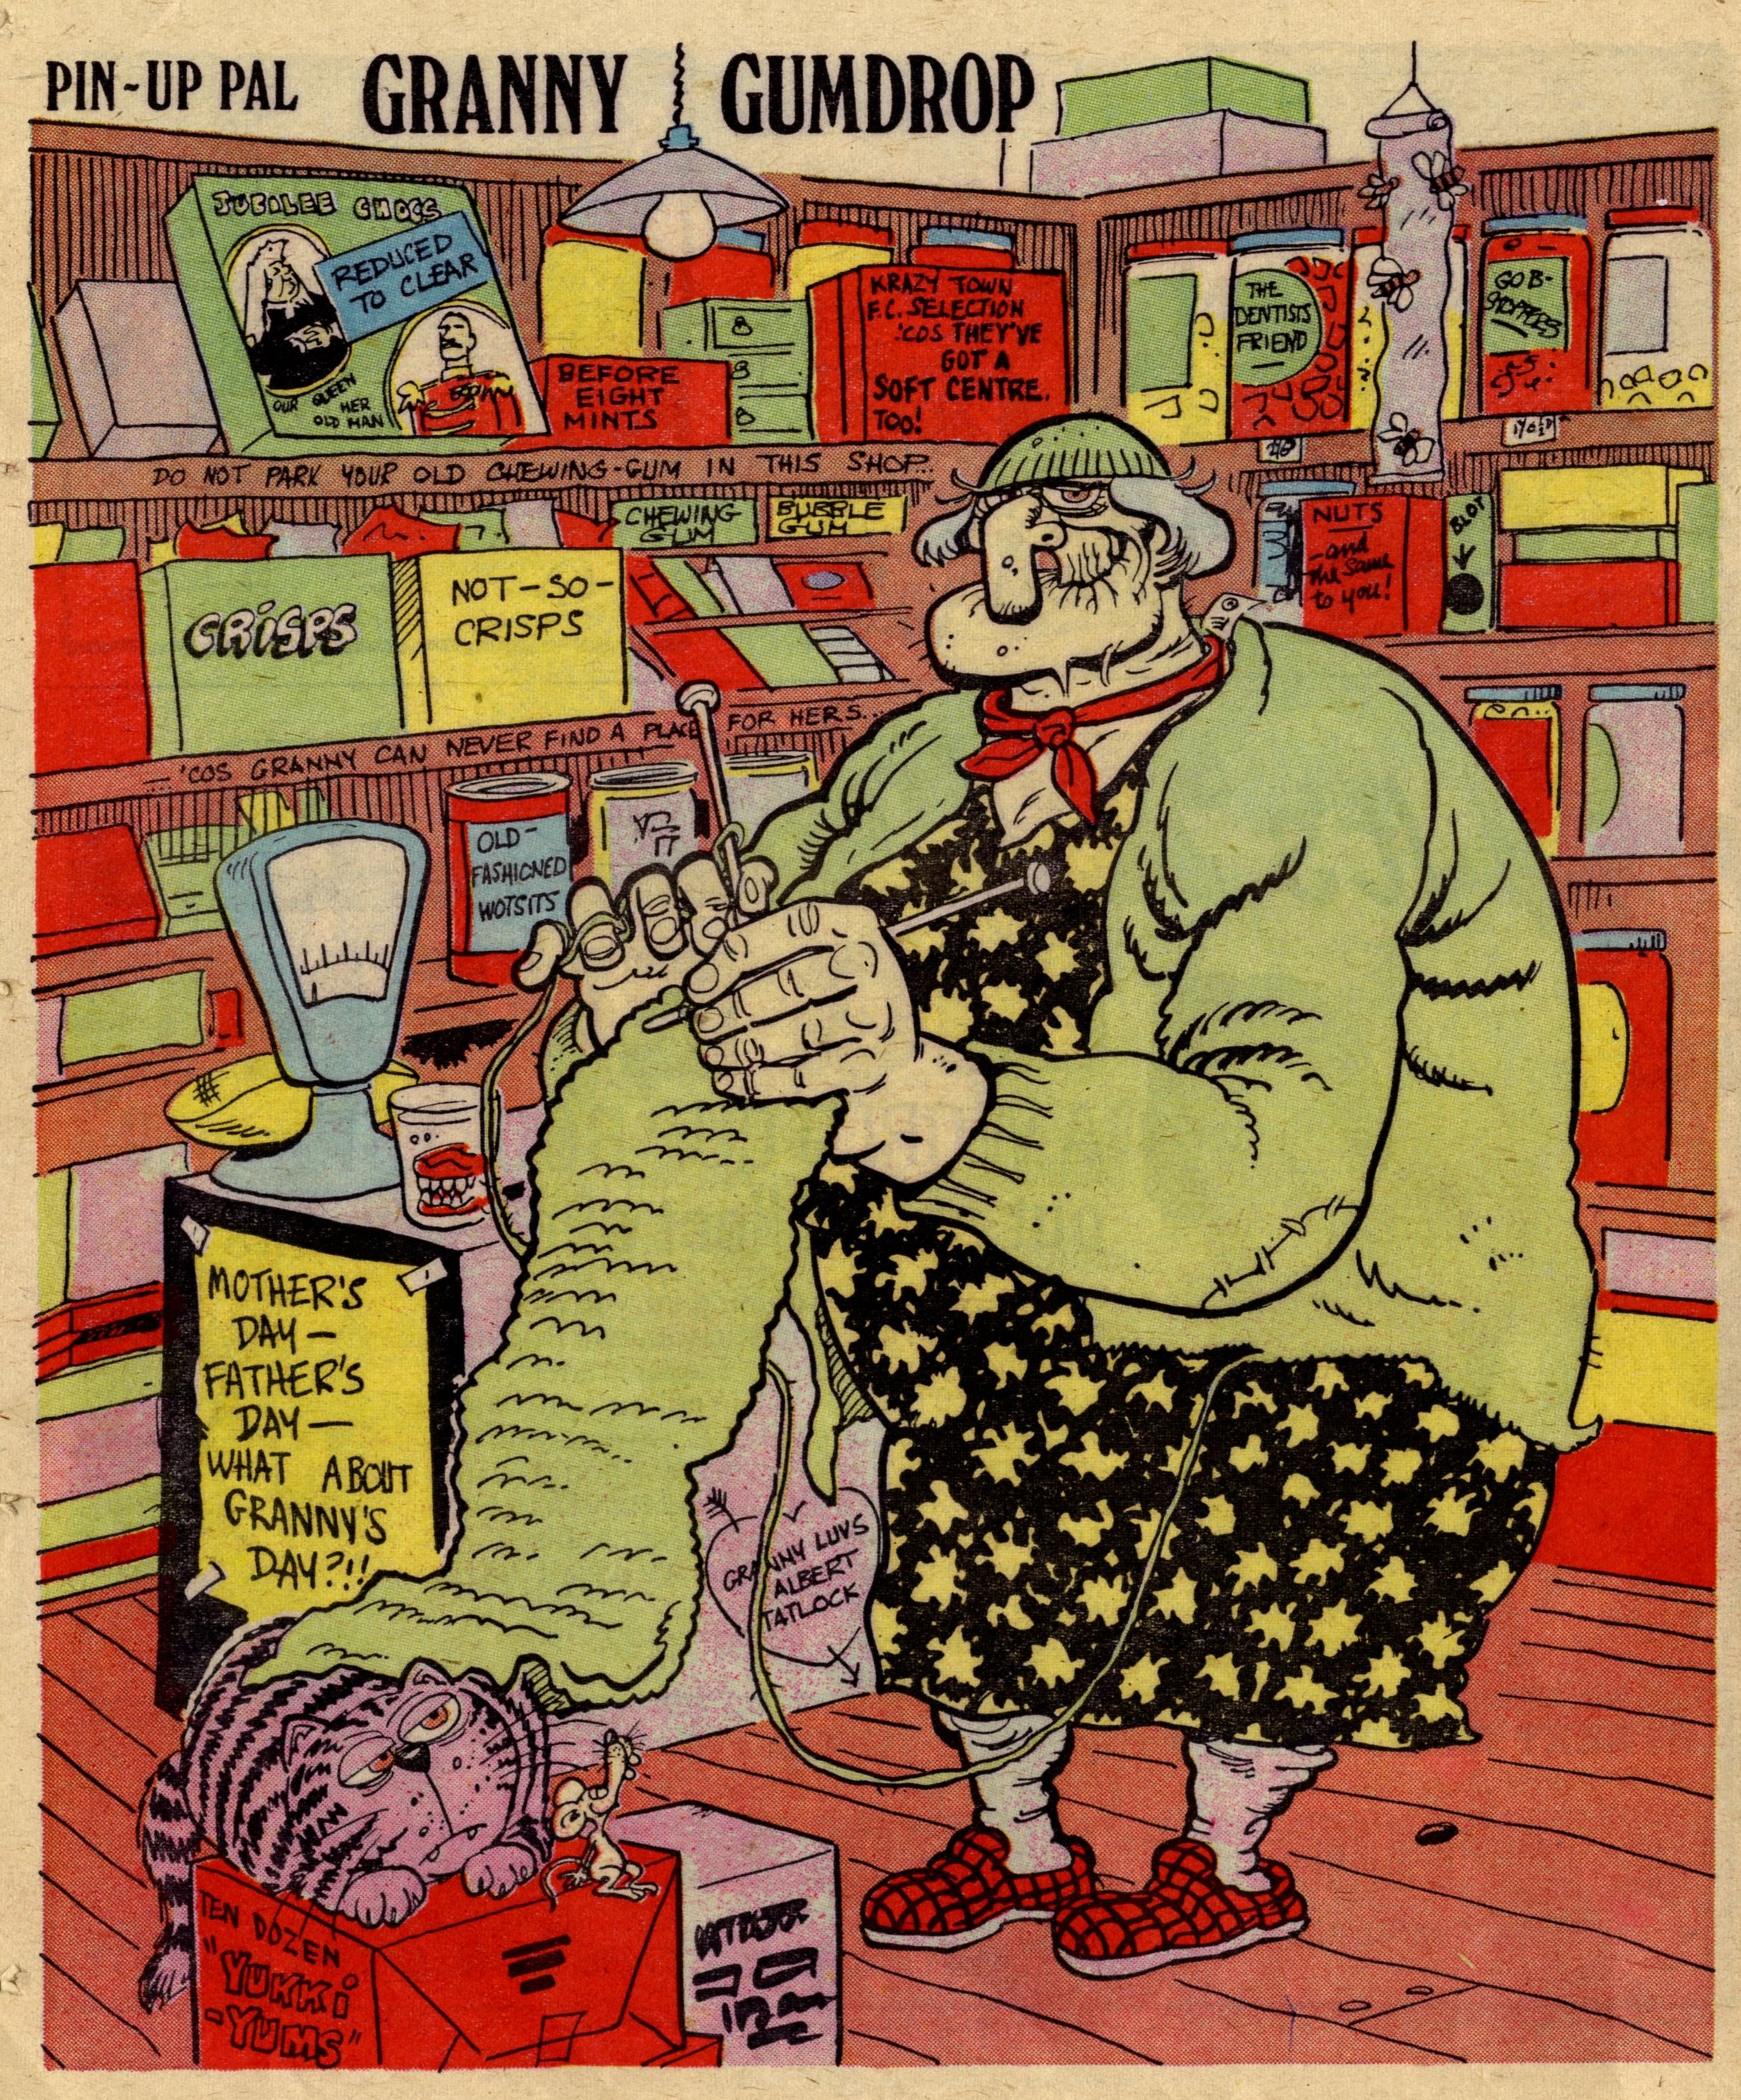 Pin-up Pal: Granny Gumdrop (artist Frank McDiarmid), 20 May 1978